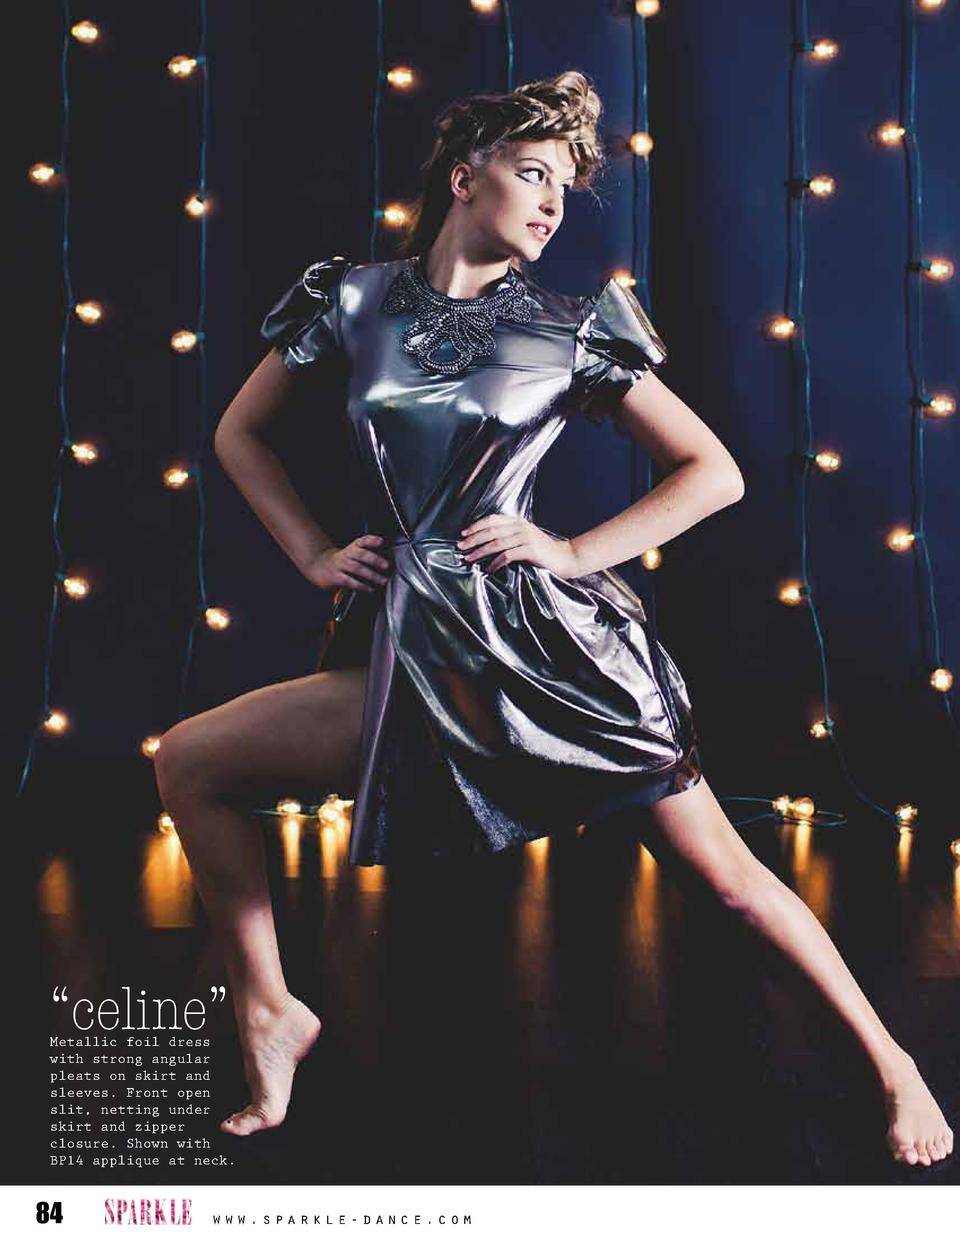 celine     Metallic foil dress with strong angular pleats on skirt and sleeves. Front open slit, netting under skirt an...